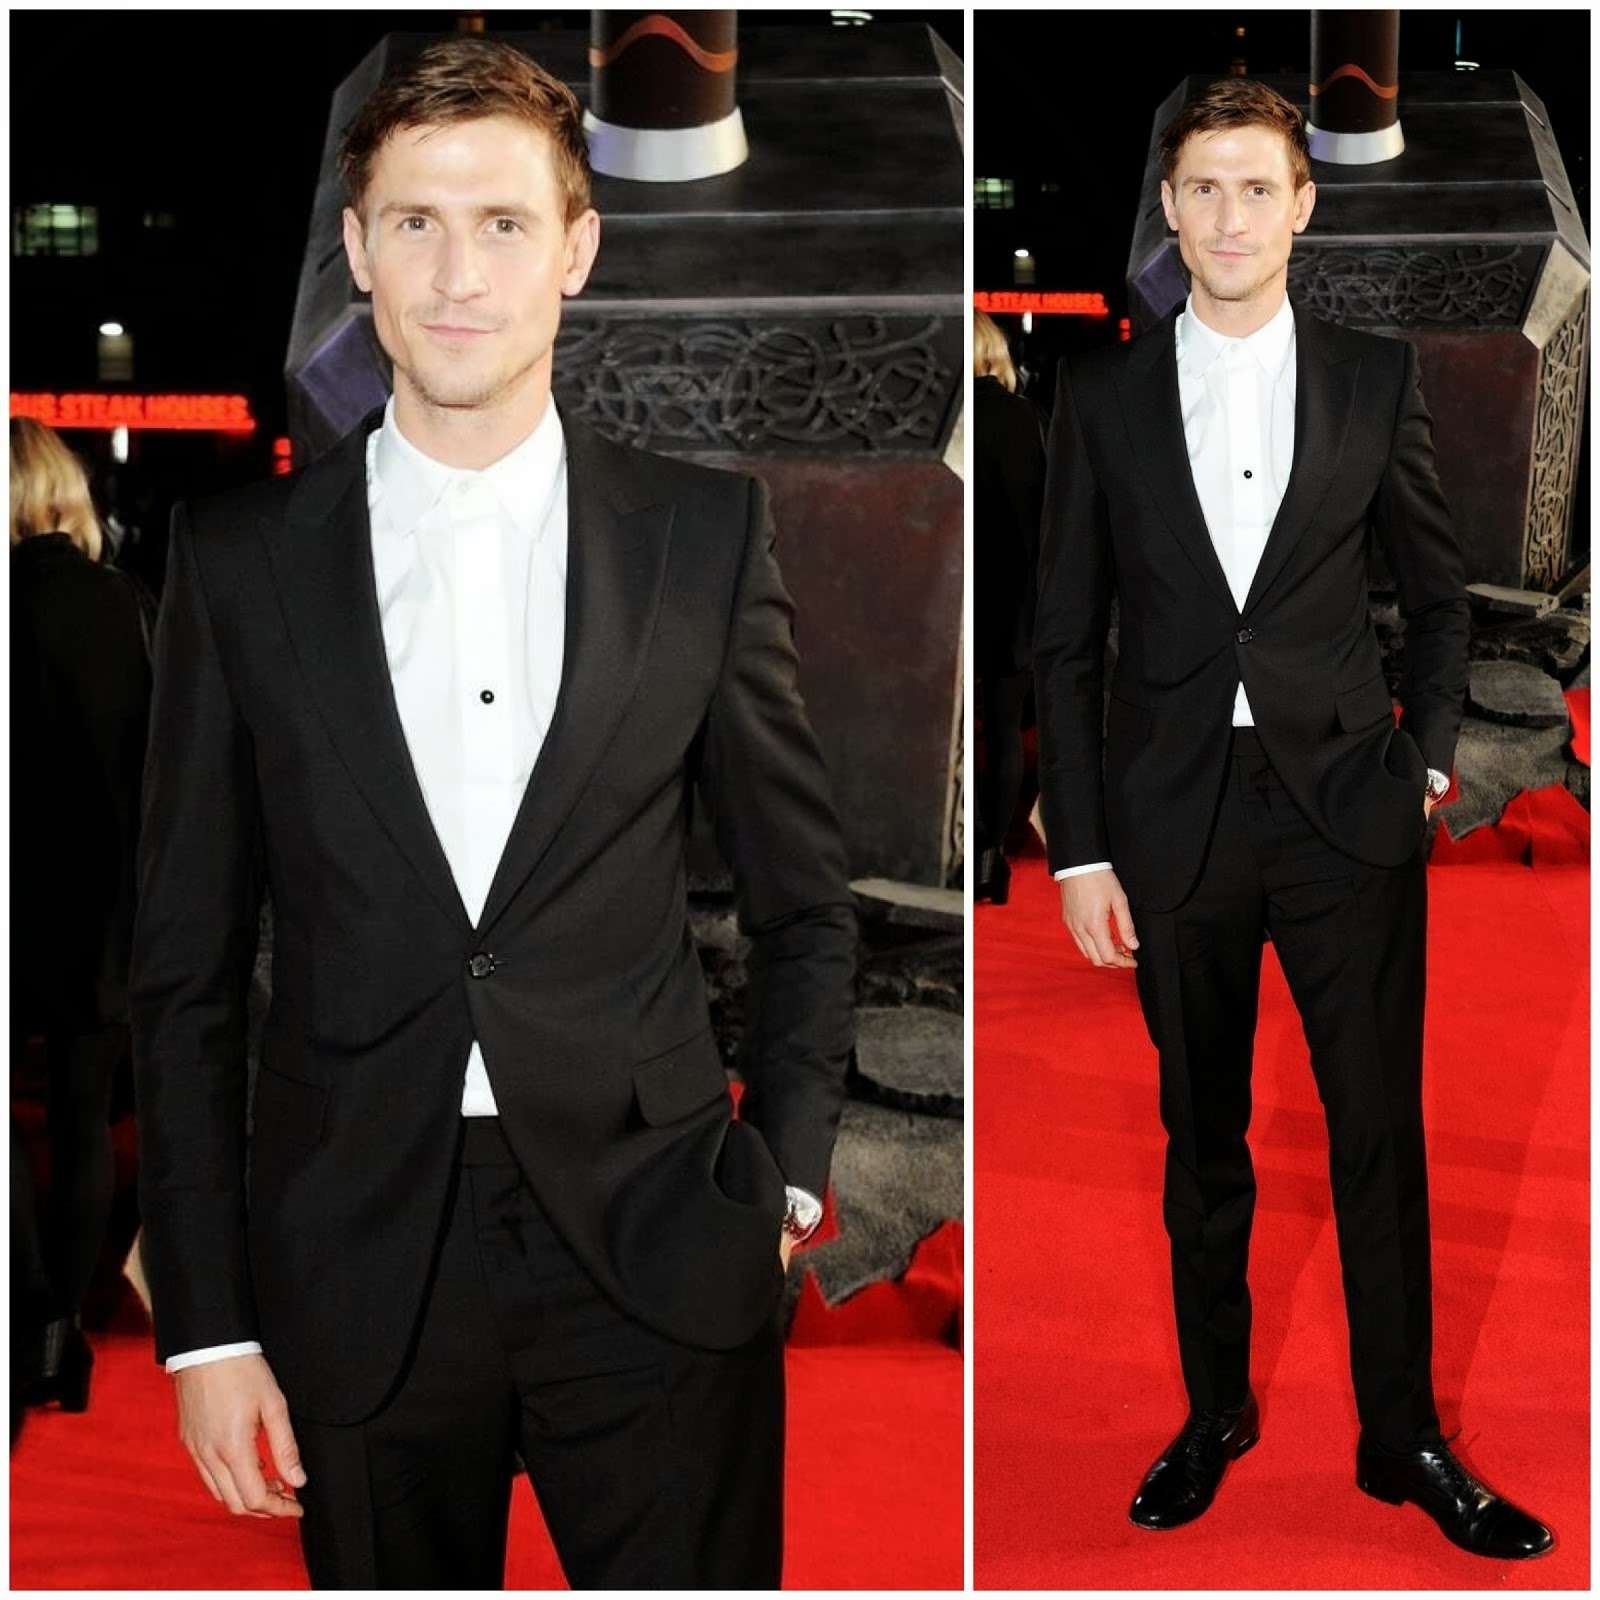 00o00 menswear blog: Jonathan Howard in Alexander McQueen - 'Thor: The Dark World' premiere, London